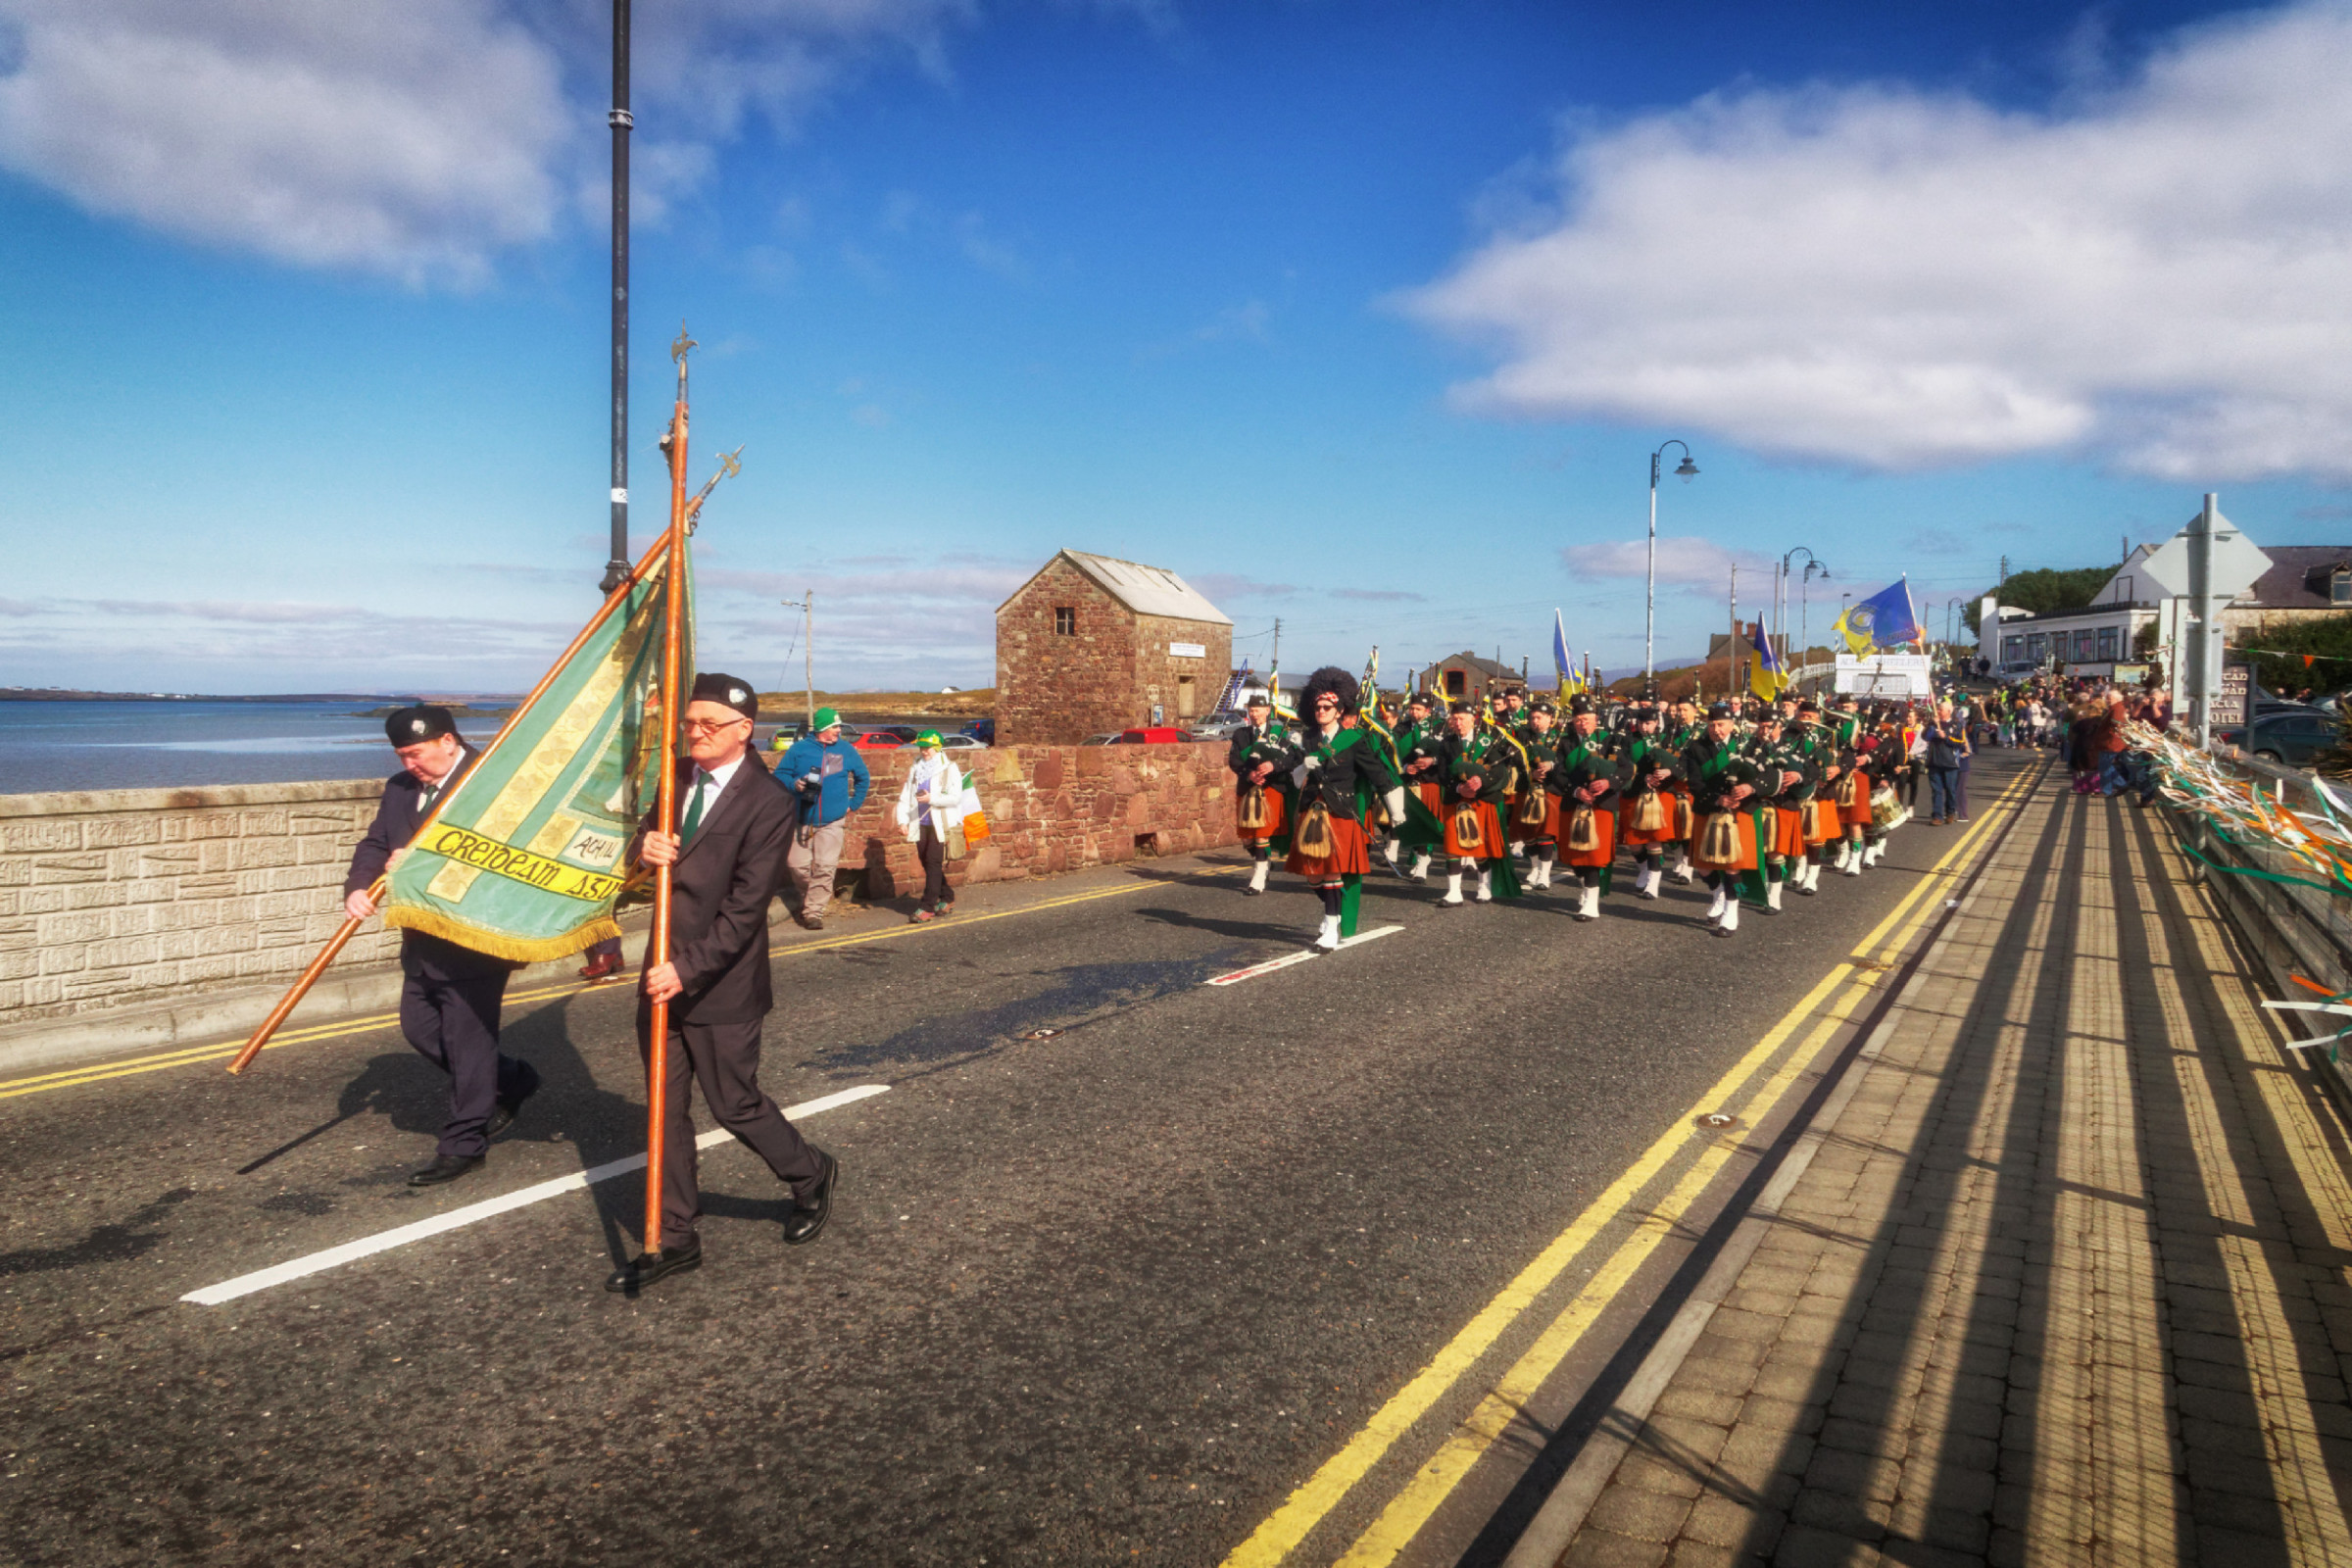 20160320125708-ie-achill-sound_parade-_DxO_13in_DxO96